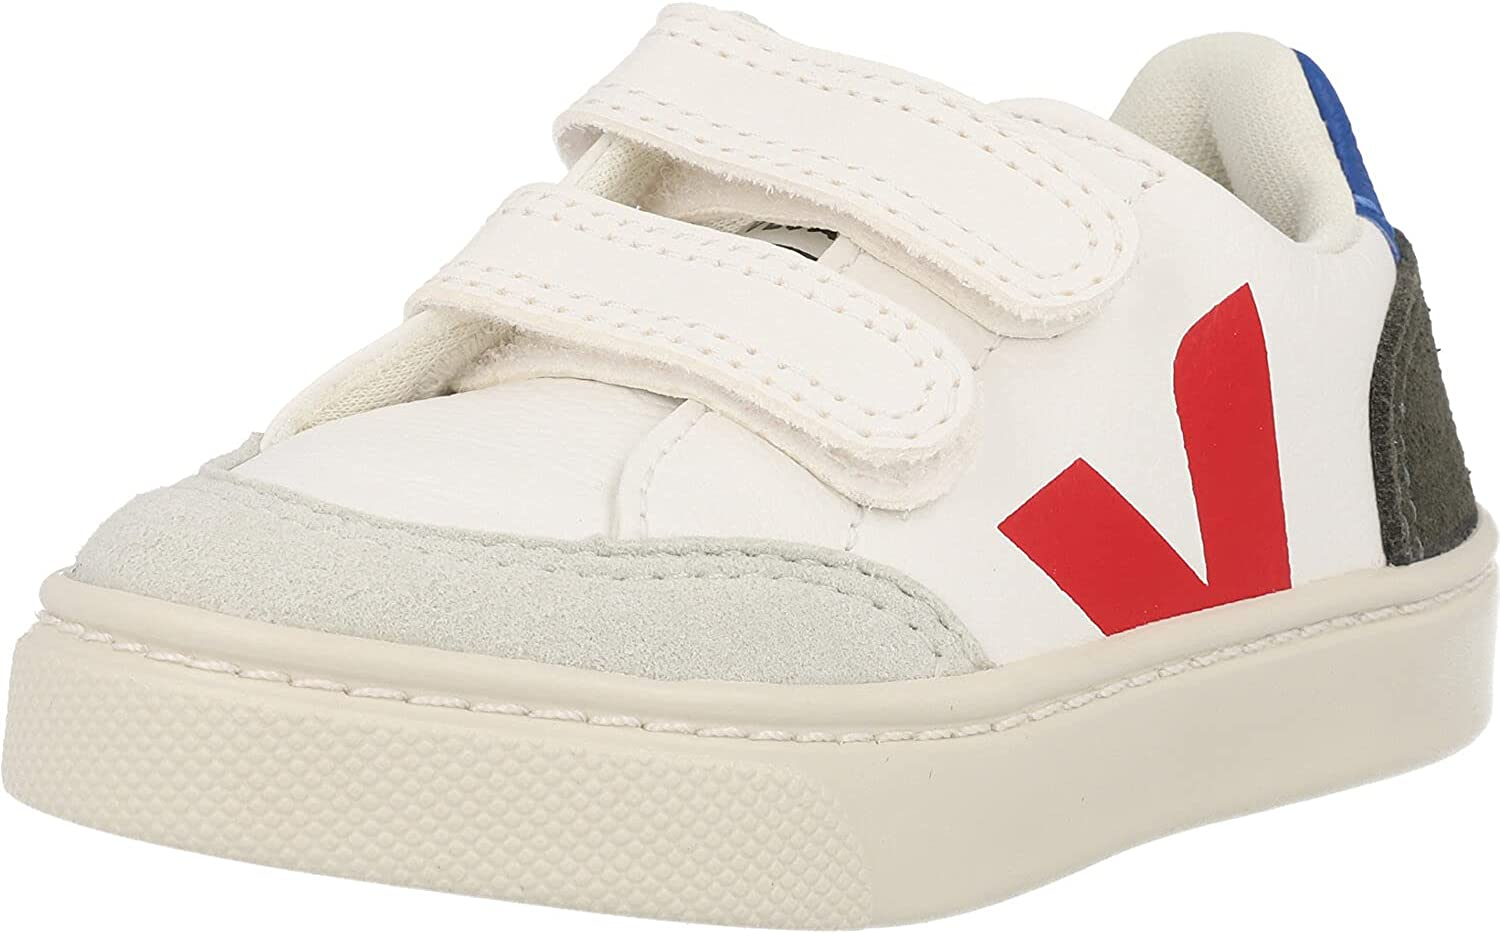 Veja Small V-12 Hook and Loop (Toddler) Extra/White/Multicolor/Mud 25 (US 8.5 Toddler) M